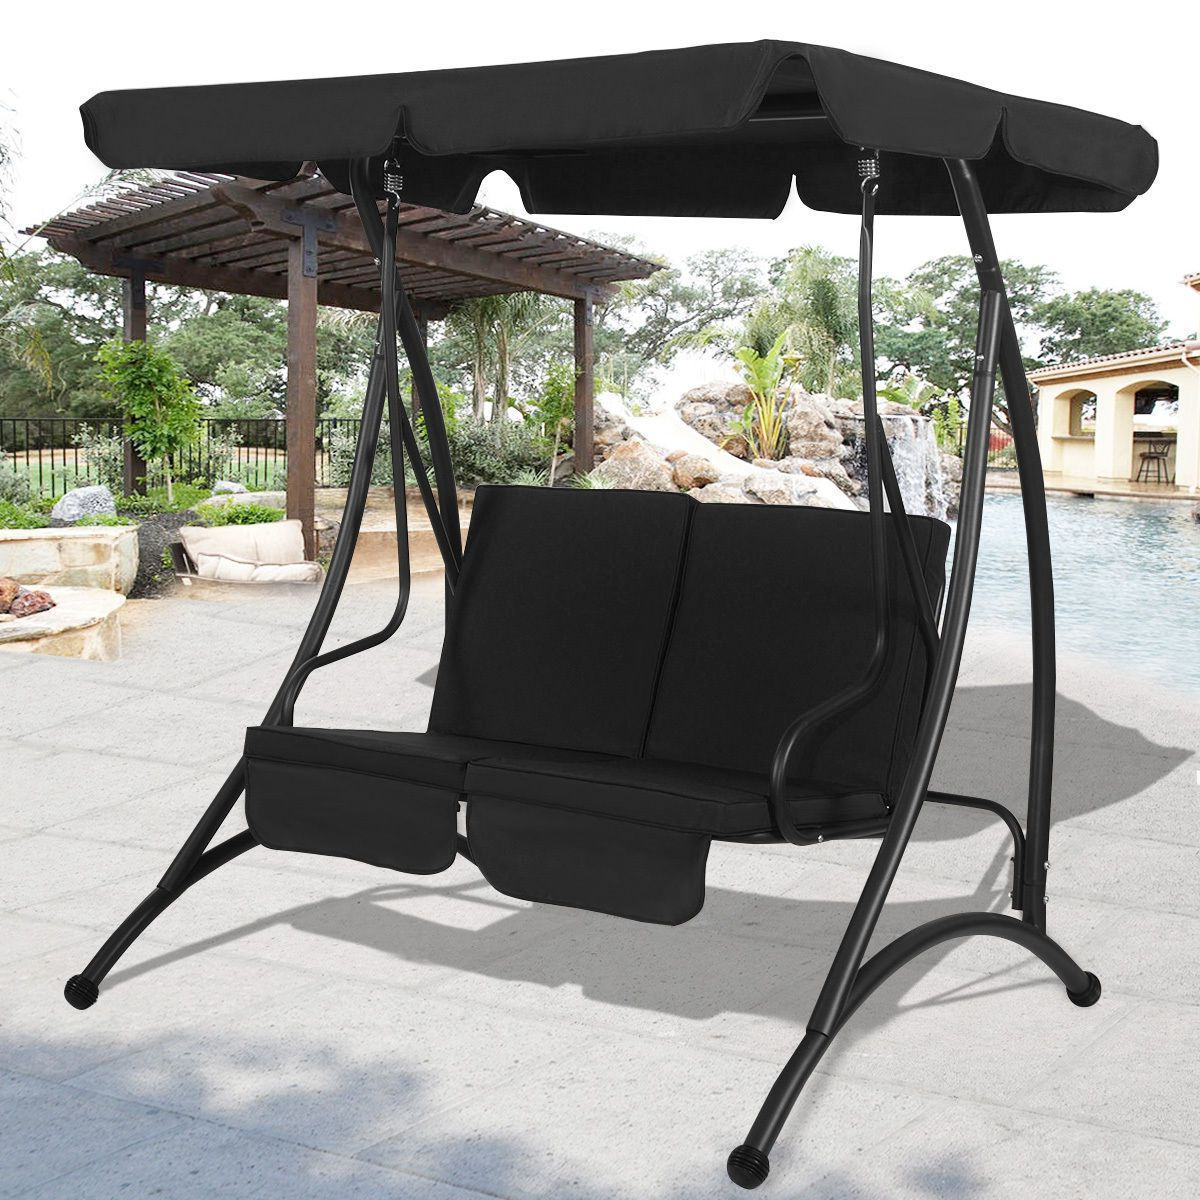 Most Recent 2 Person Black Steel Outdoor Swings For Outdoor Patio Canopy Swing Chair Metal 2 Person Garden (Gallery 1 of 25)